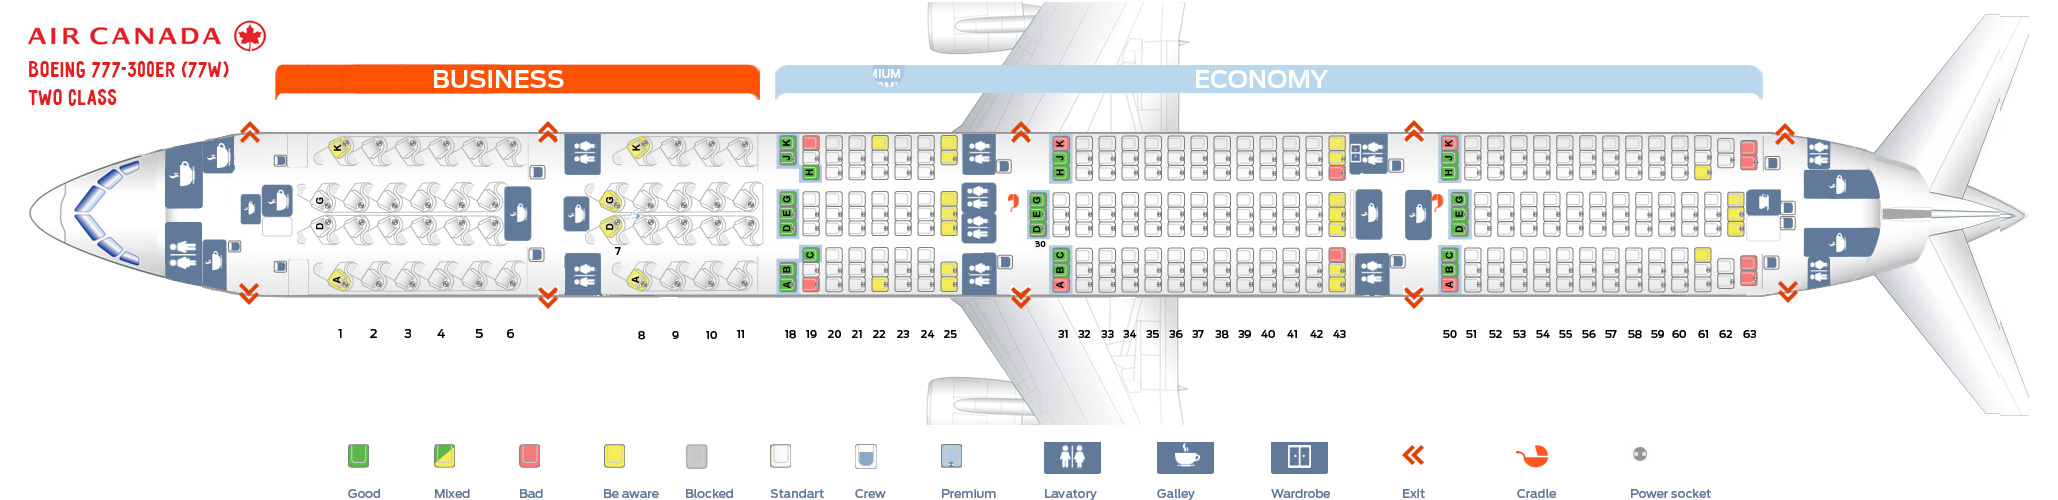 777 300Er Air Canada Seat Map Seat map Boeing 777 300 Air Canada. Best seats in plane